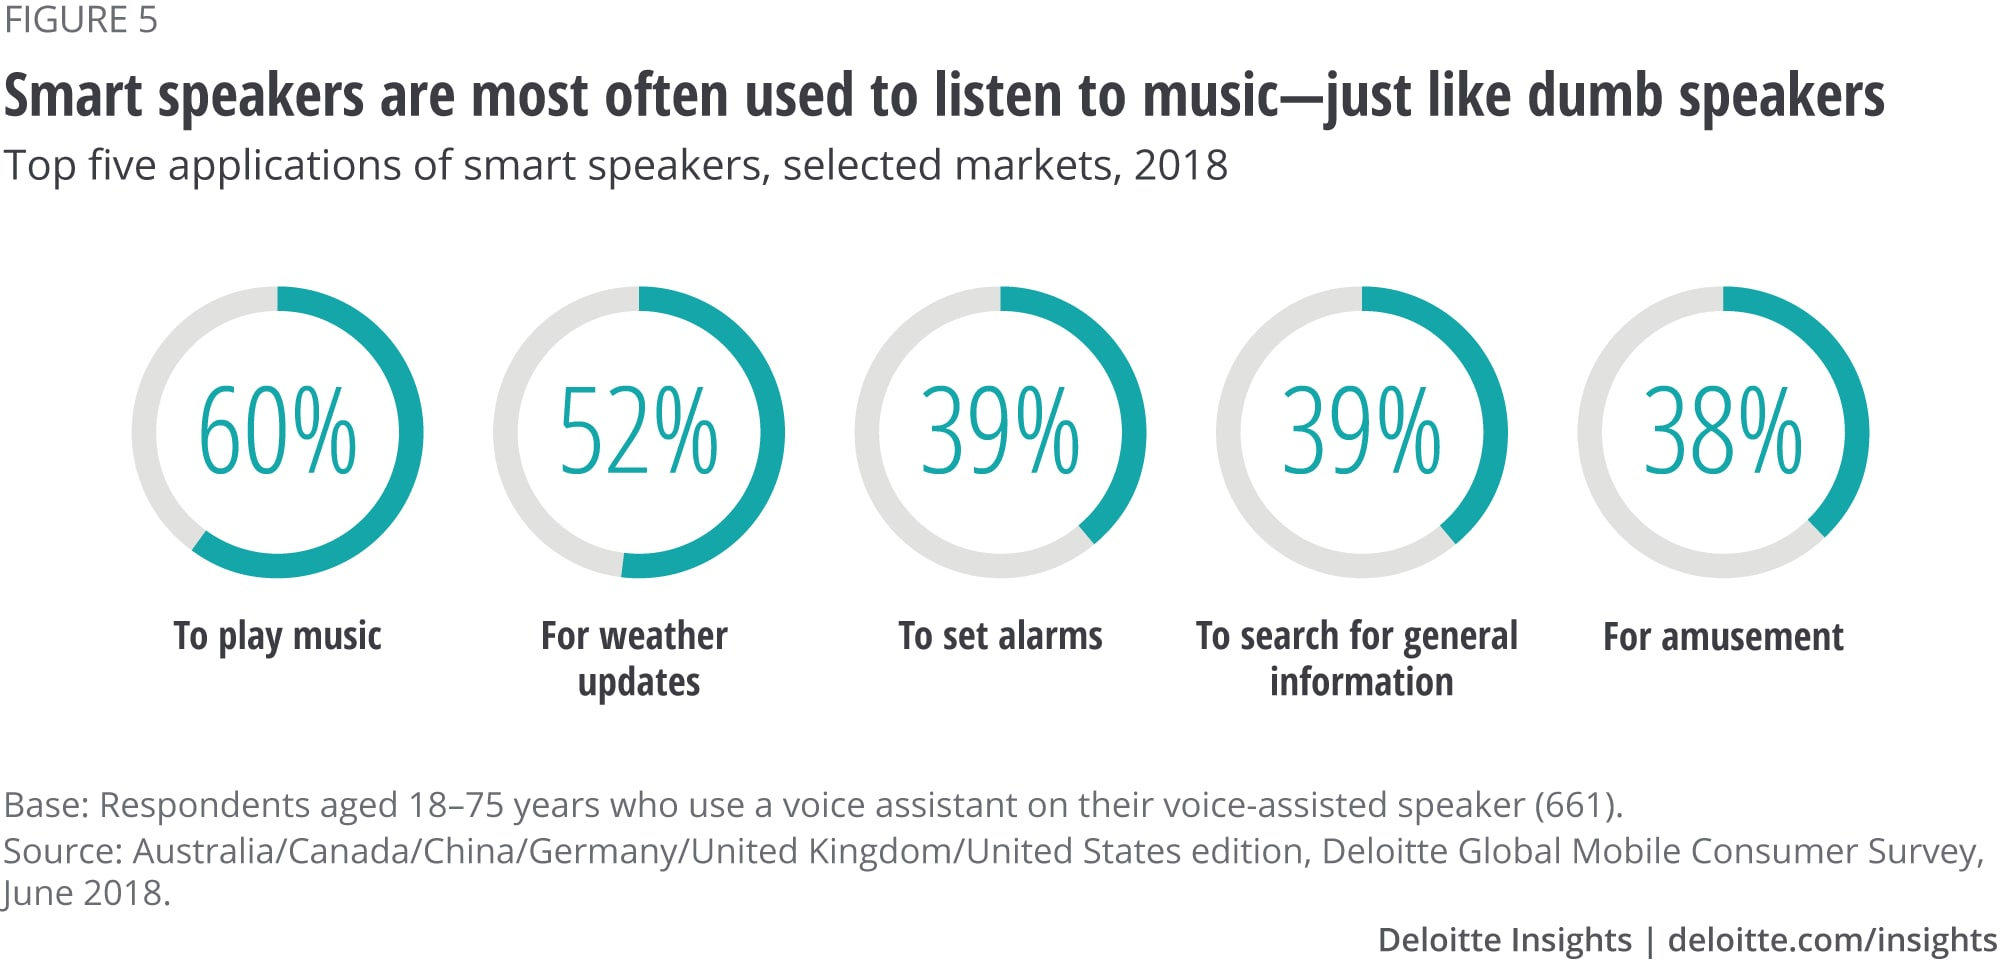 Smart speakers are most often used to listen to music—just like dumb speakers